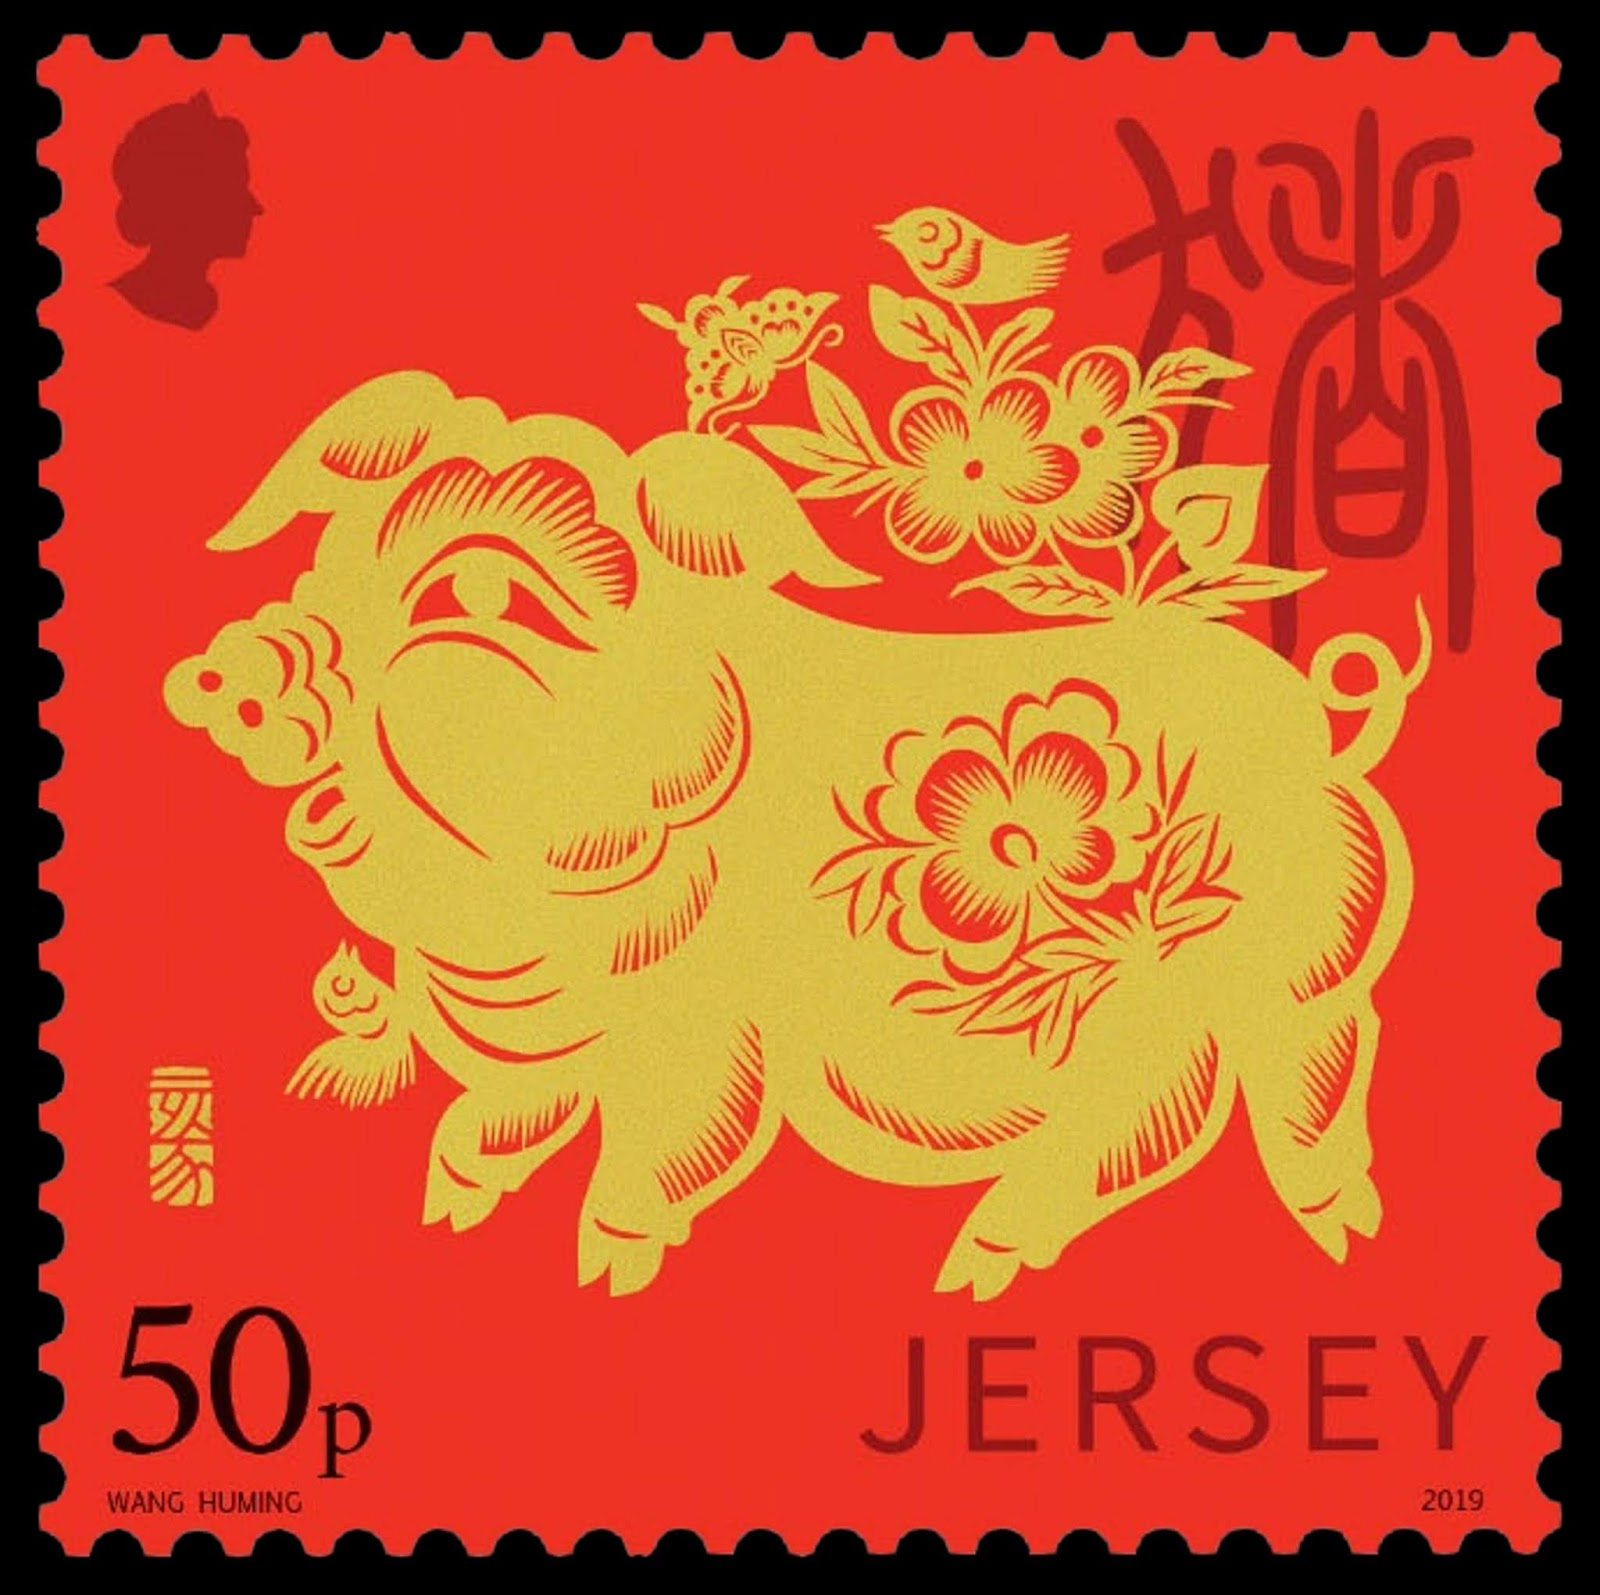 Jersey - Year of the Pig (January 4, 2019)